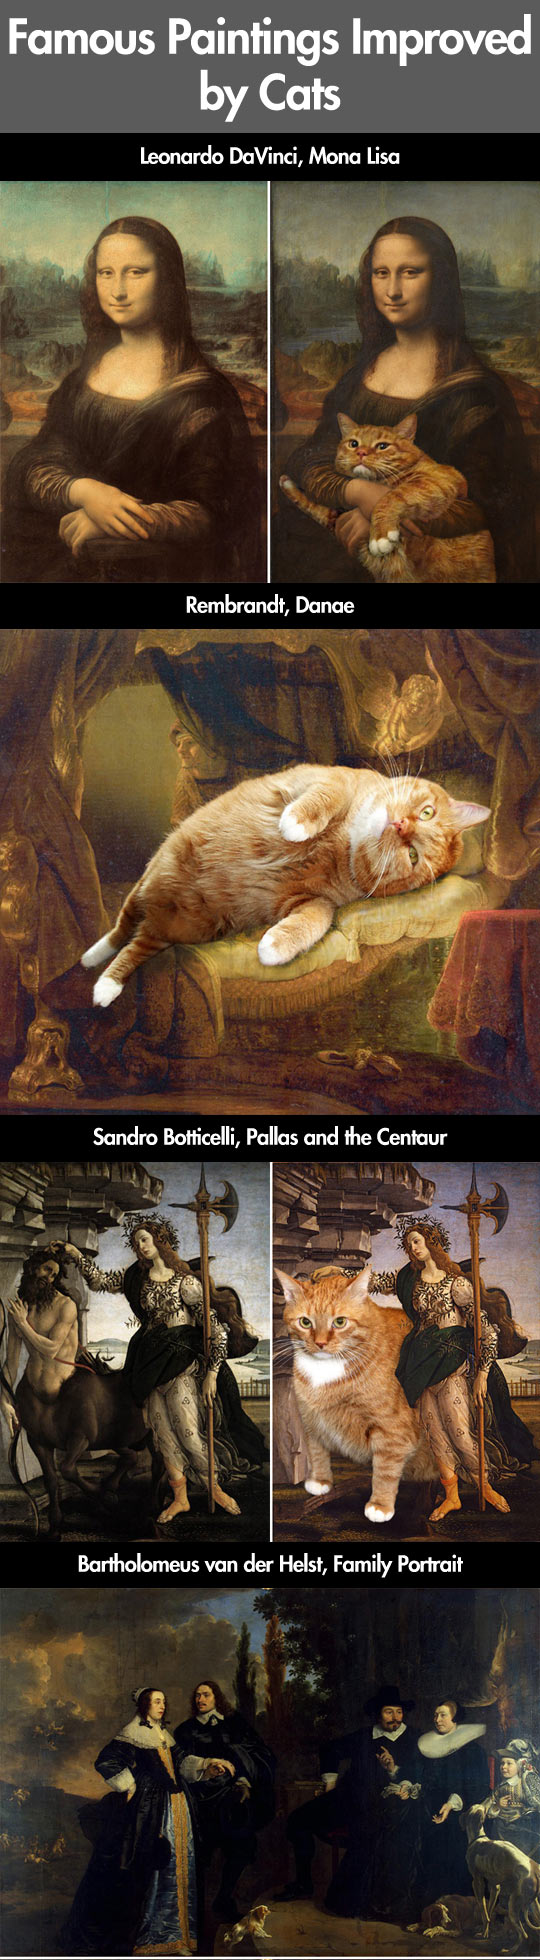 funny-famous-paintings-cats-improved